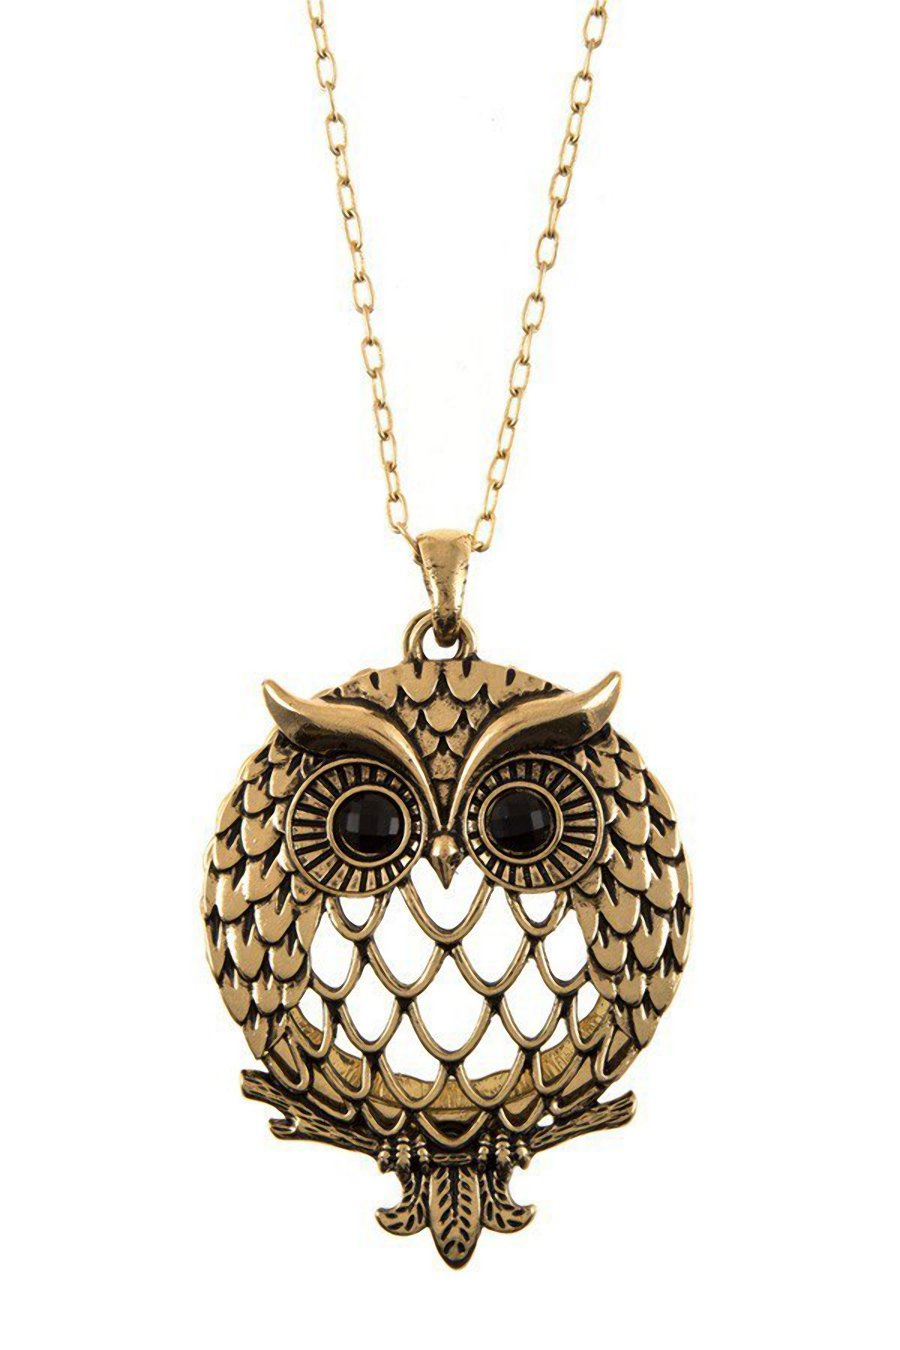 eVogues Magnifier Magnifying Glass Owl Pendant Sliding Top Necklace Gold Tone - One Size